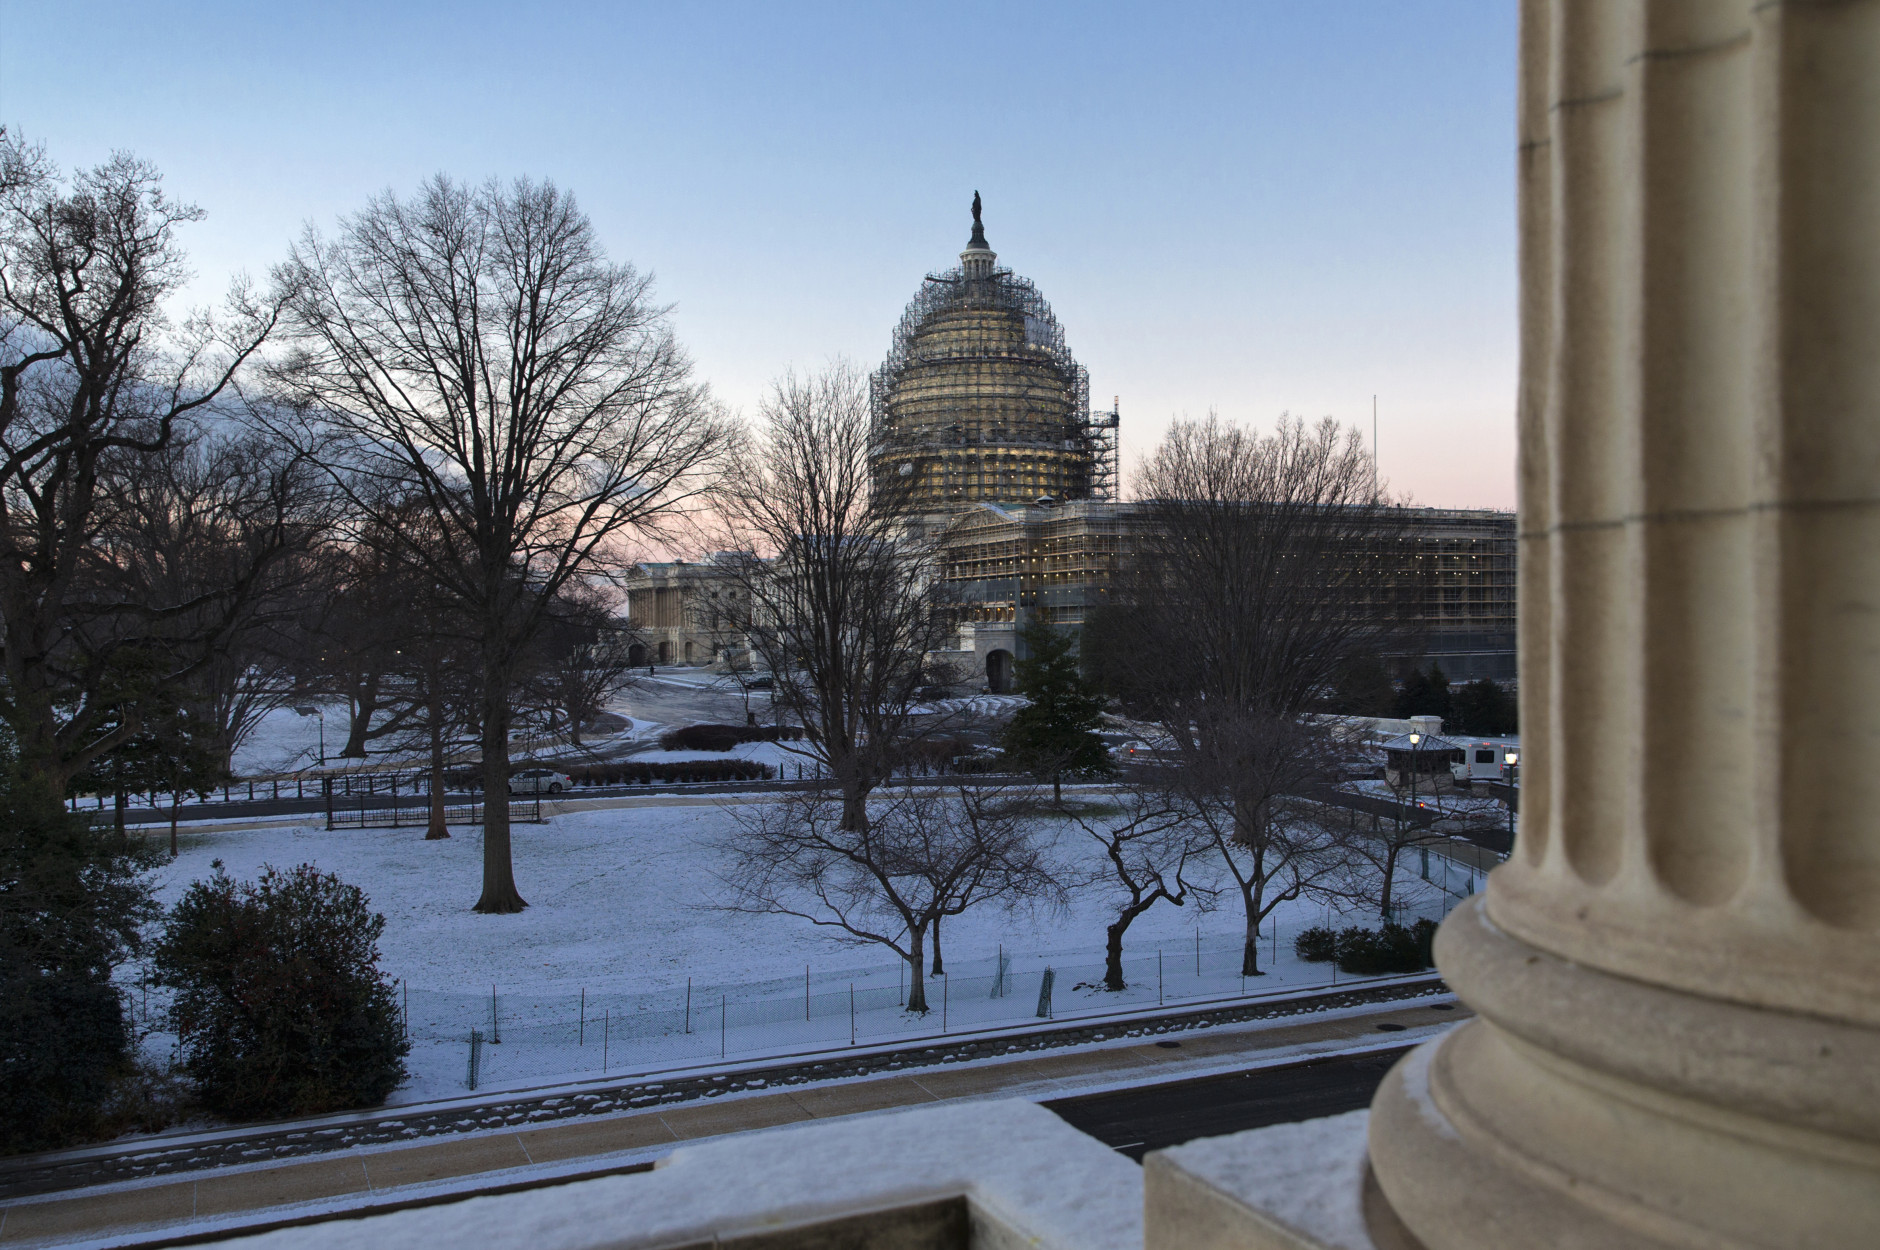 The Capitol in Washington, Thursday morning, Jan. 21, 2016, after less than an inch of overnight snow created hazardous road conditions and major traffic delays. The Washington region could get up to two feet of snow along with strong winds and whiteout conditions on Friday night and Saturday. (AP Photo/J. Scott Applewhite)